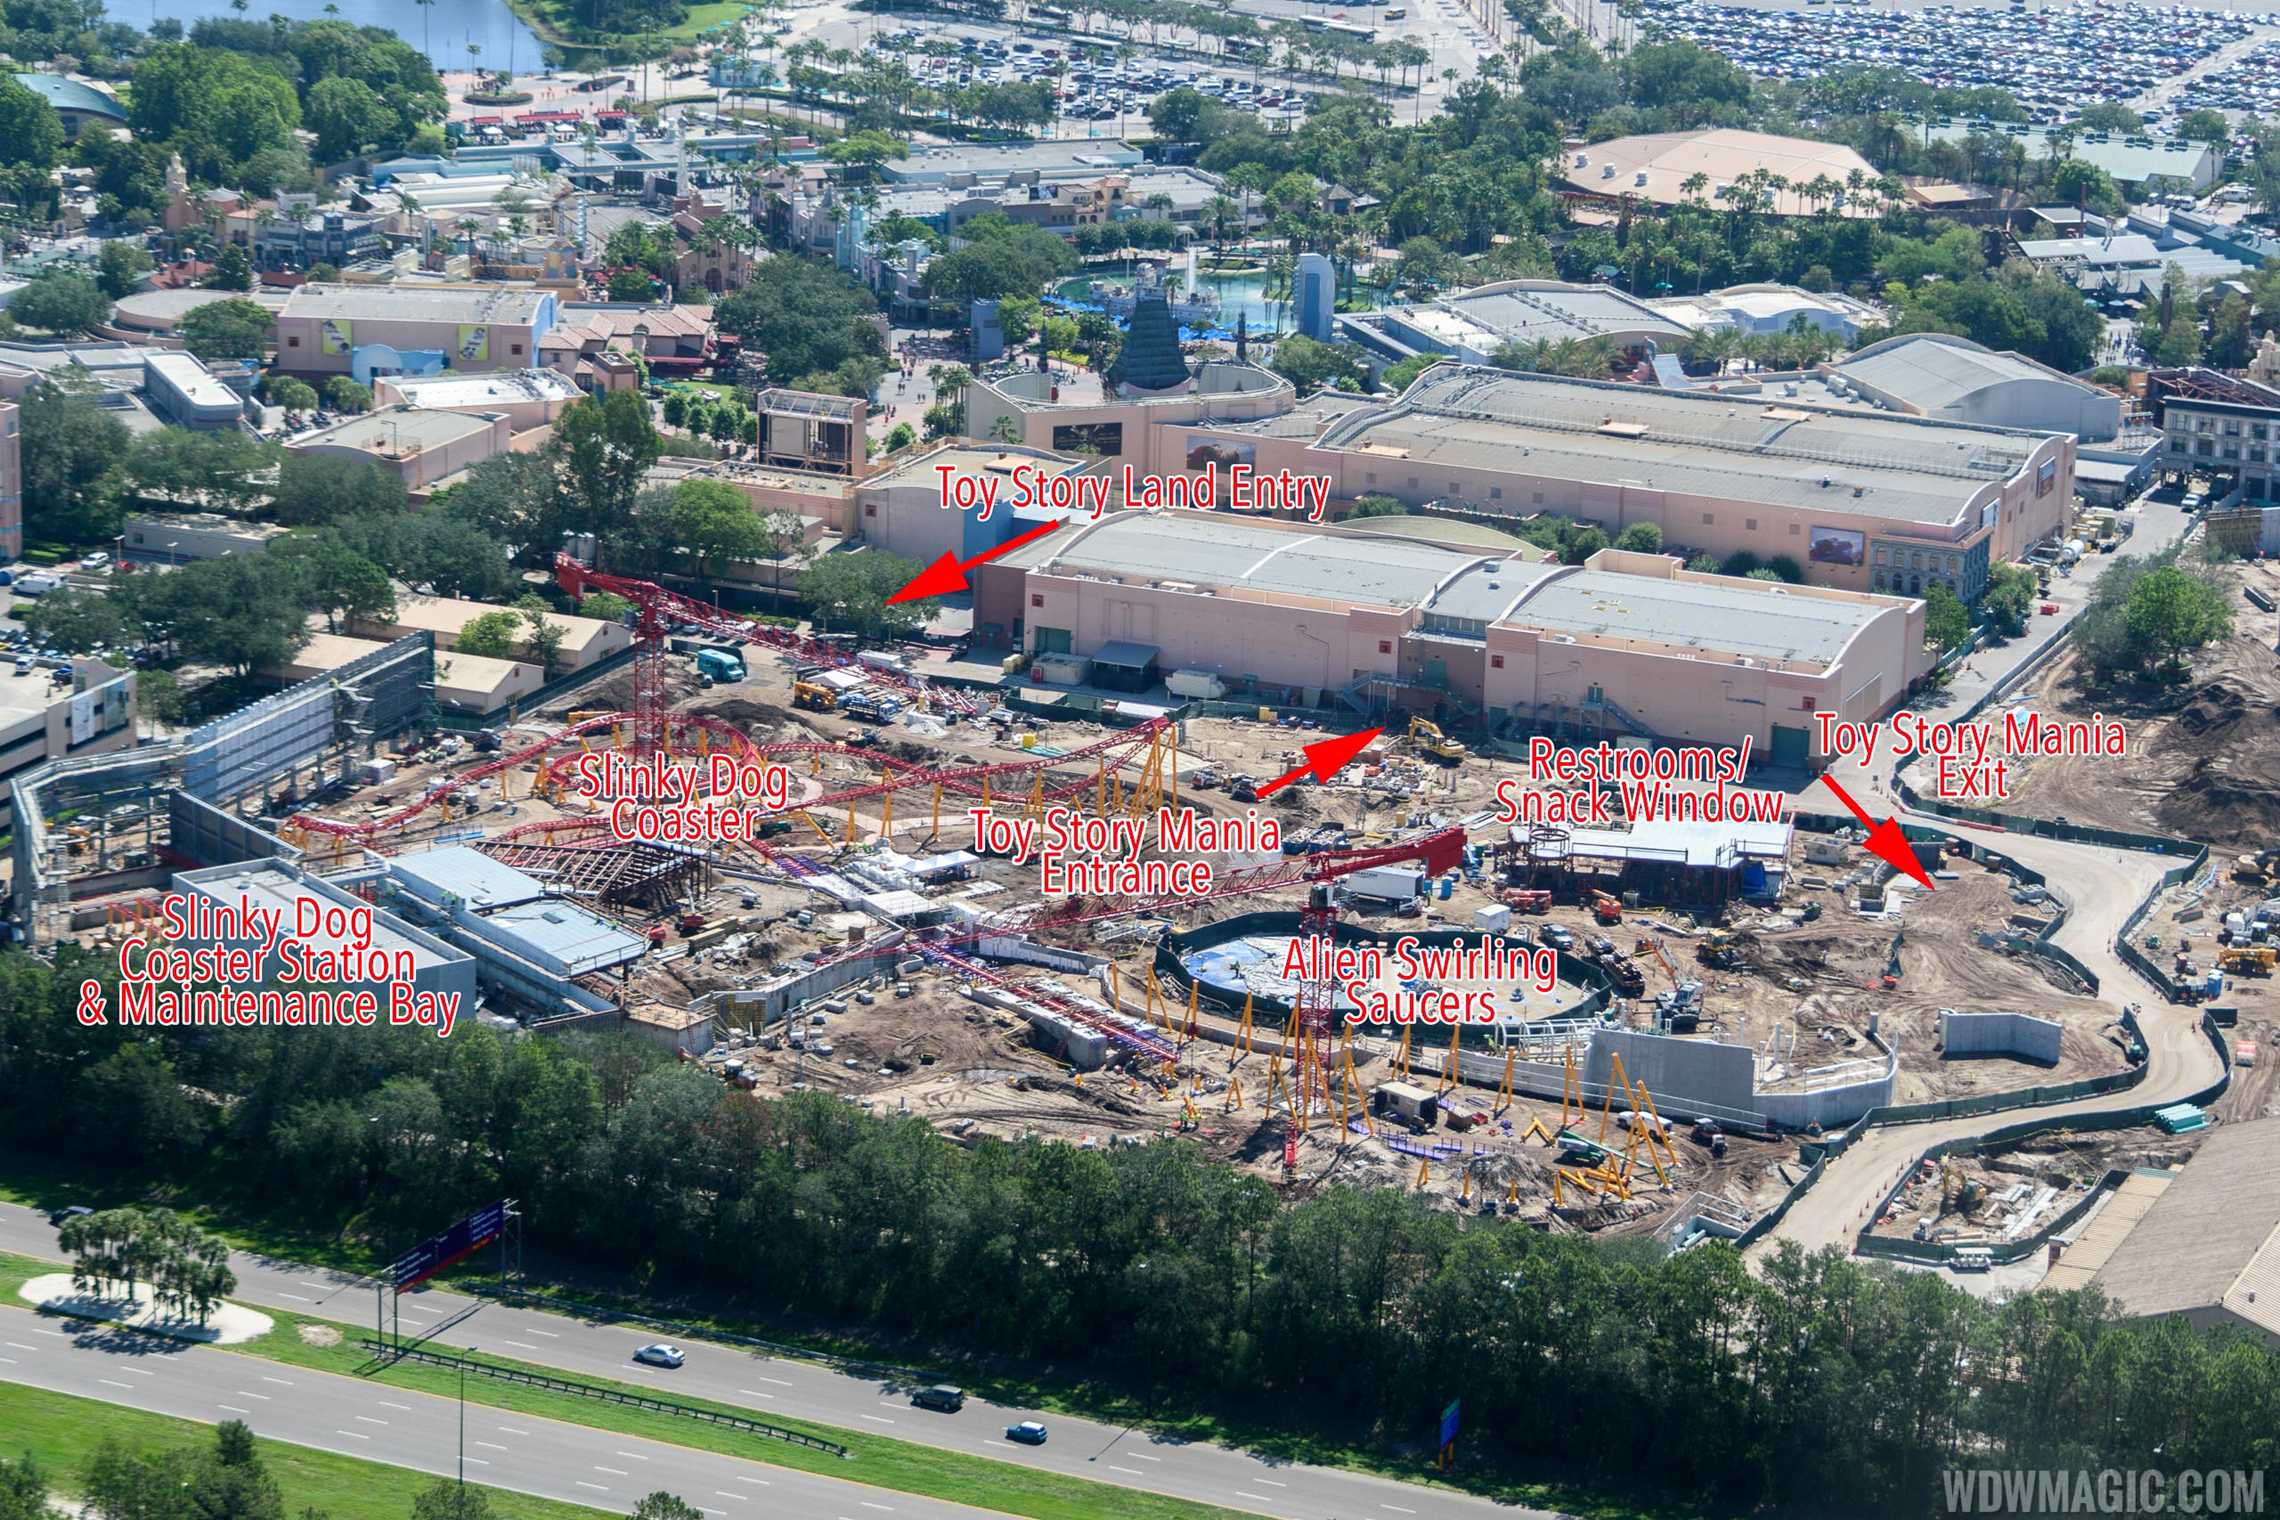 Annotated aerial view of Toy Story Land under construction